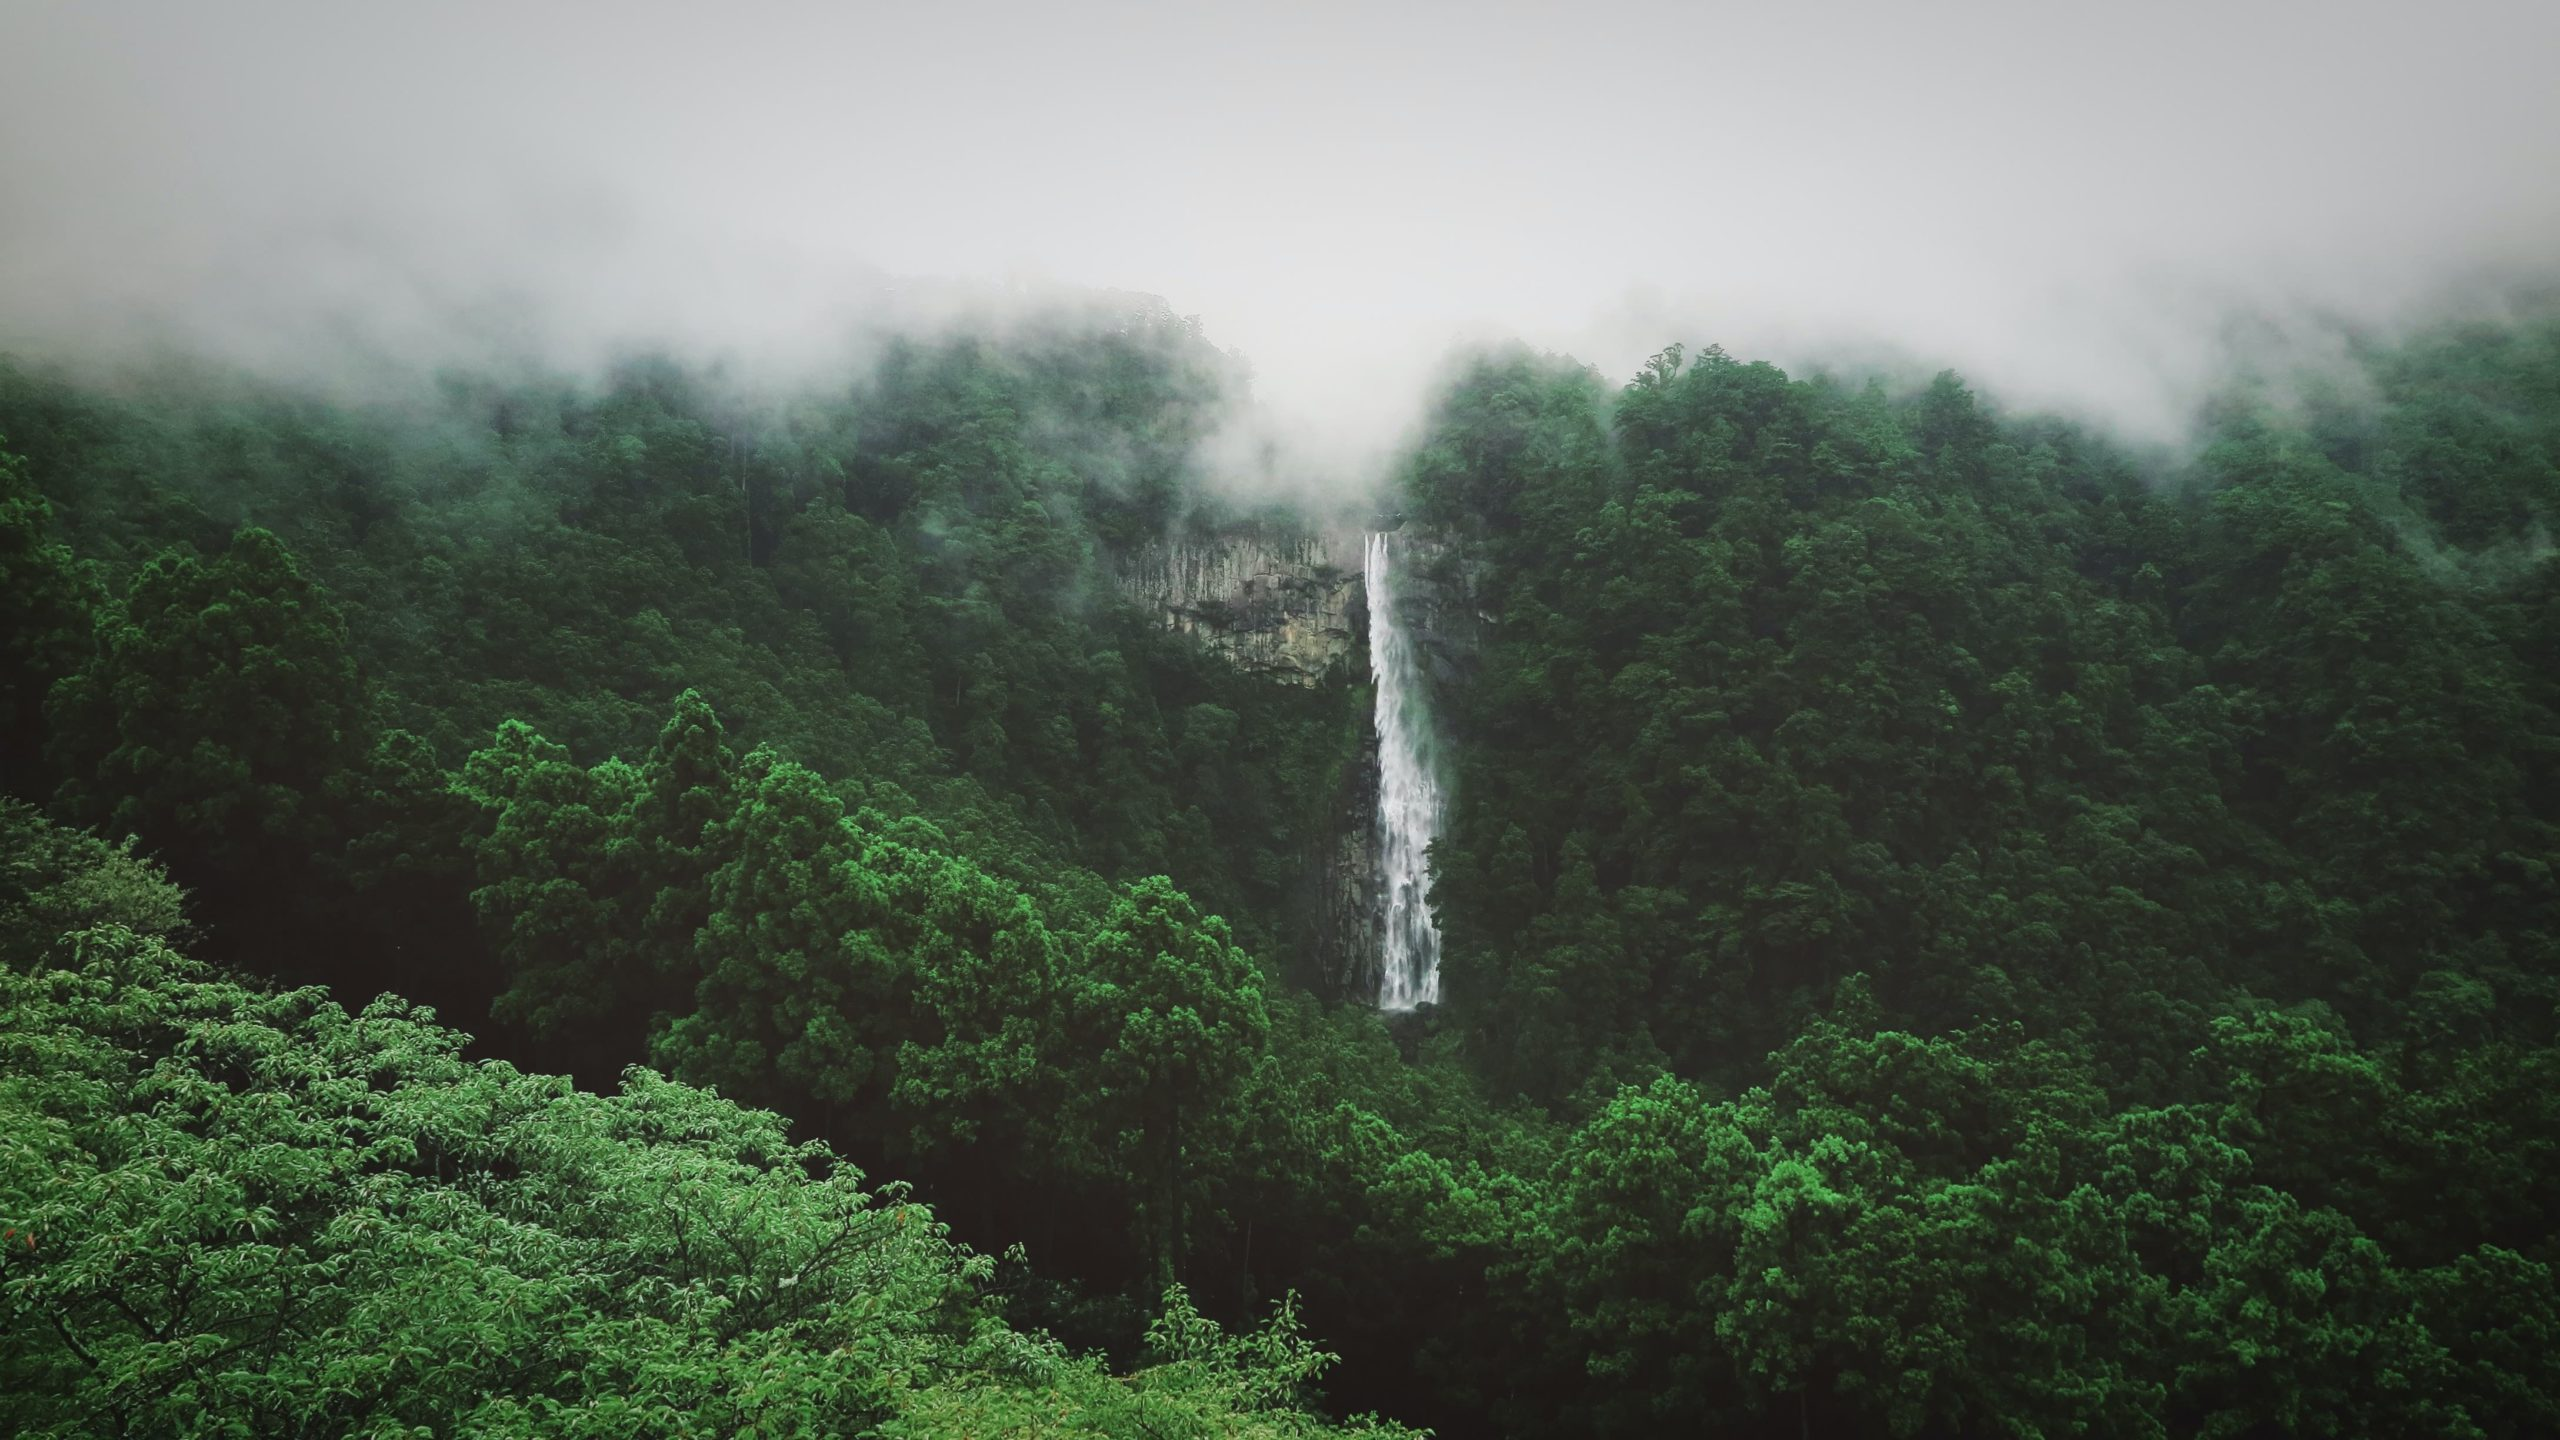 Nachi Falls in Japan - A foggy scene with green hills and a water fall